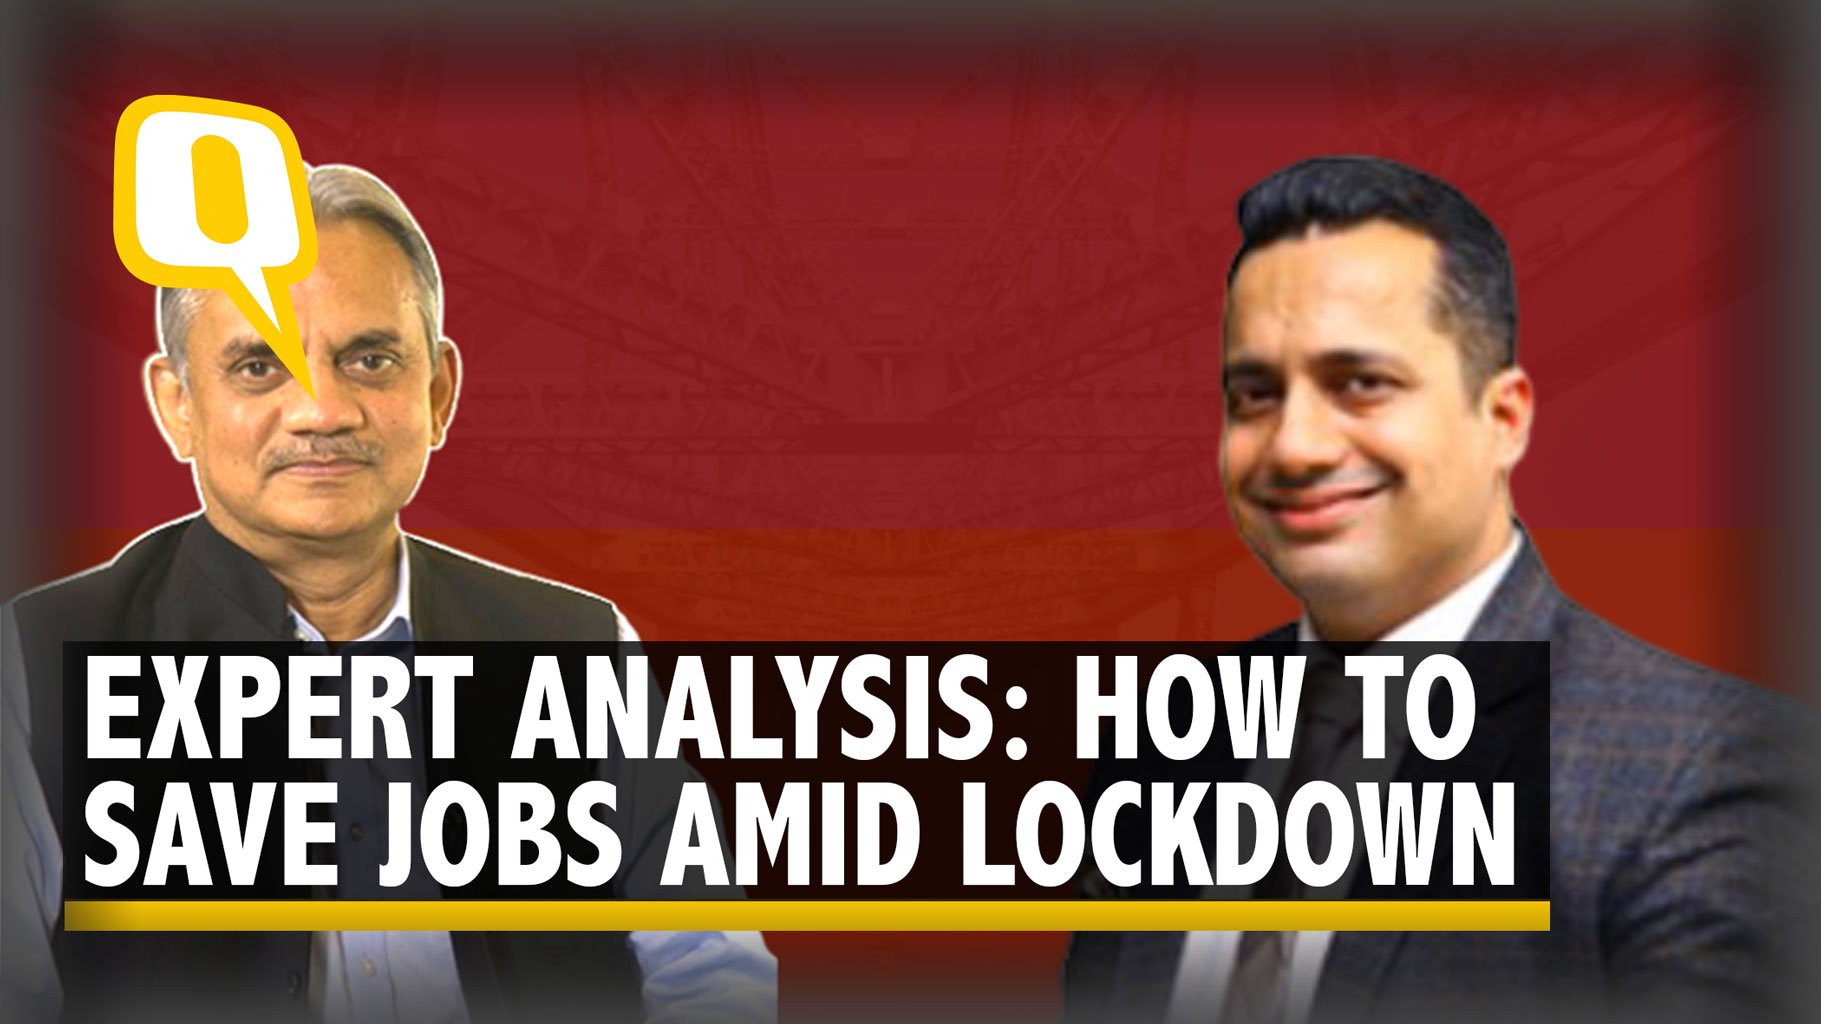 Business Coach Vivek Bindra on How To Save Jobs, Businesses Amid Lockdown